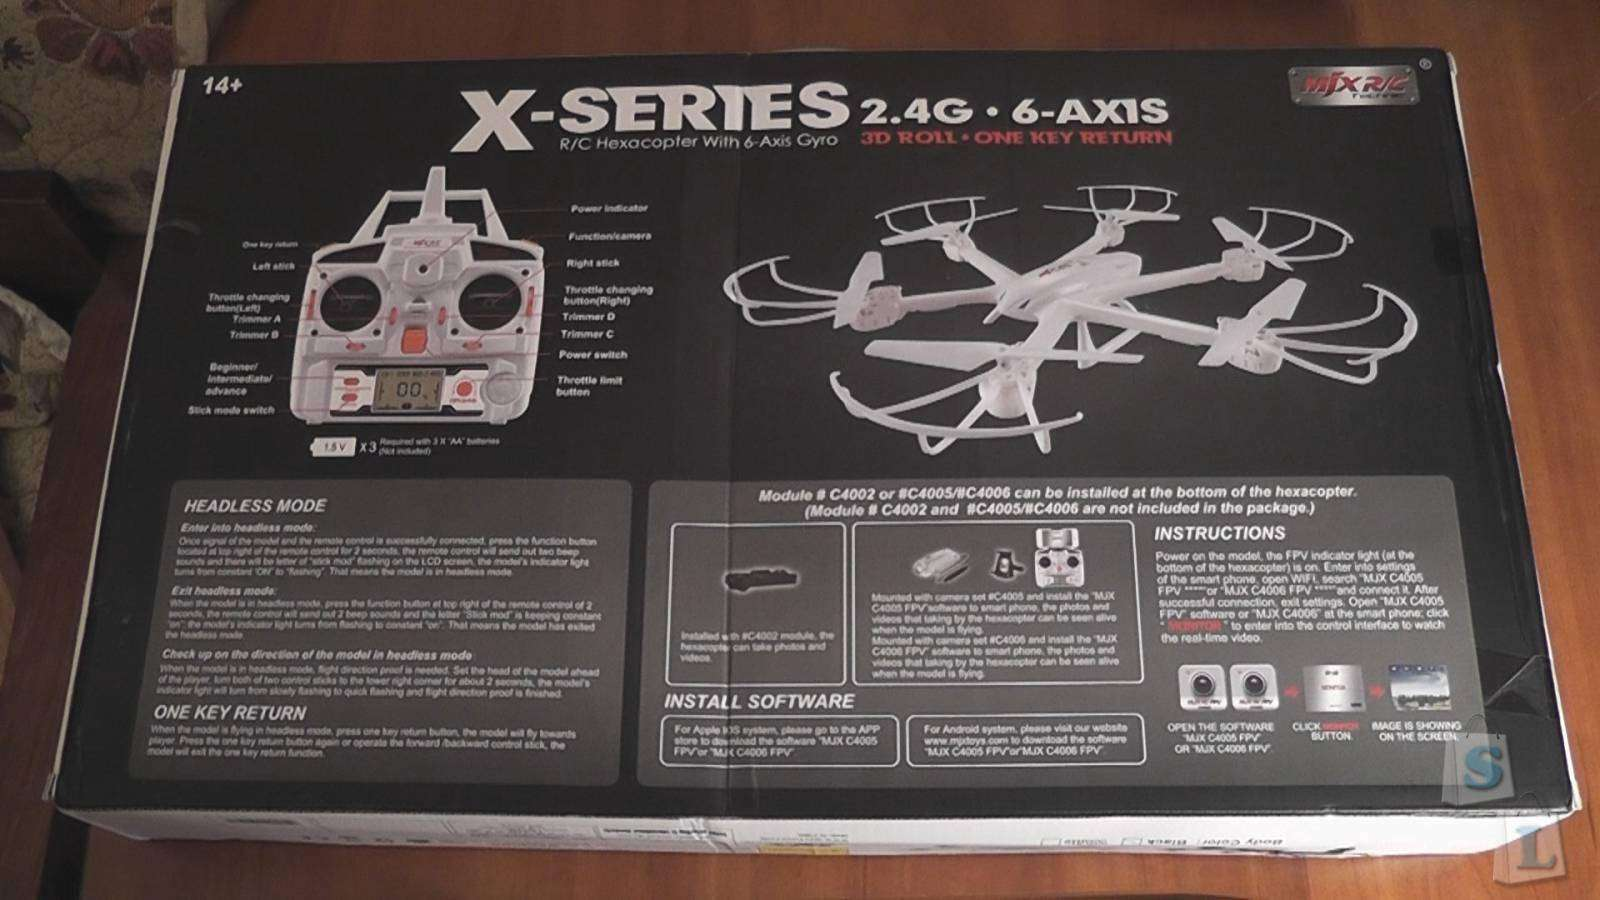 GearBest: MJX R/C X600 X-SERIES 2.4GHz, 4Ch, 6 Axis Gyro, RC Hexacopter with Headless mode, without camera (RTF)